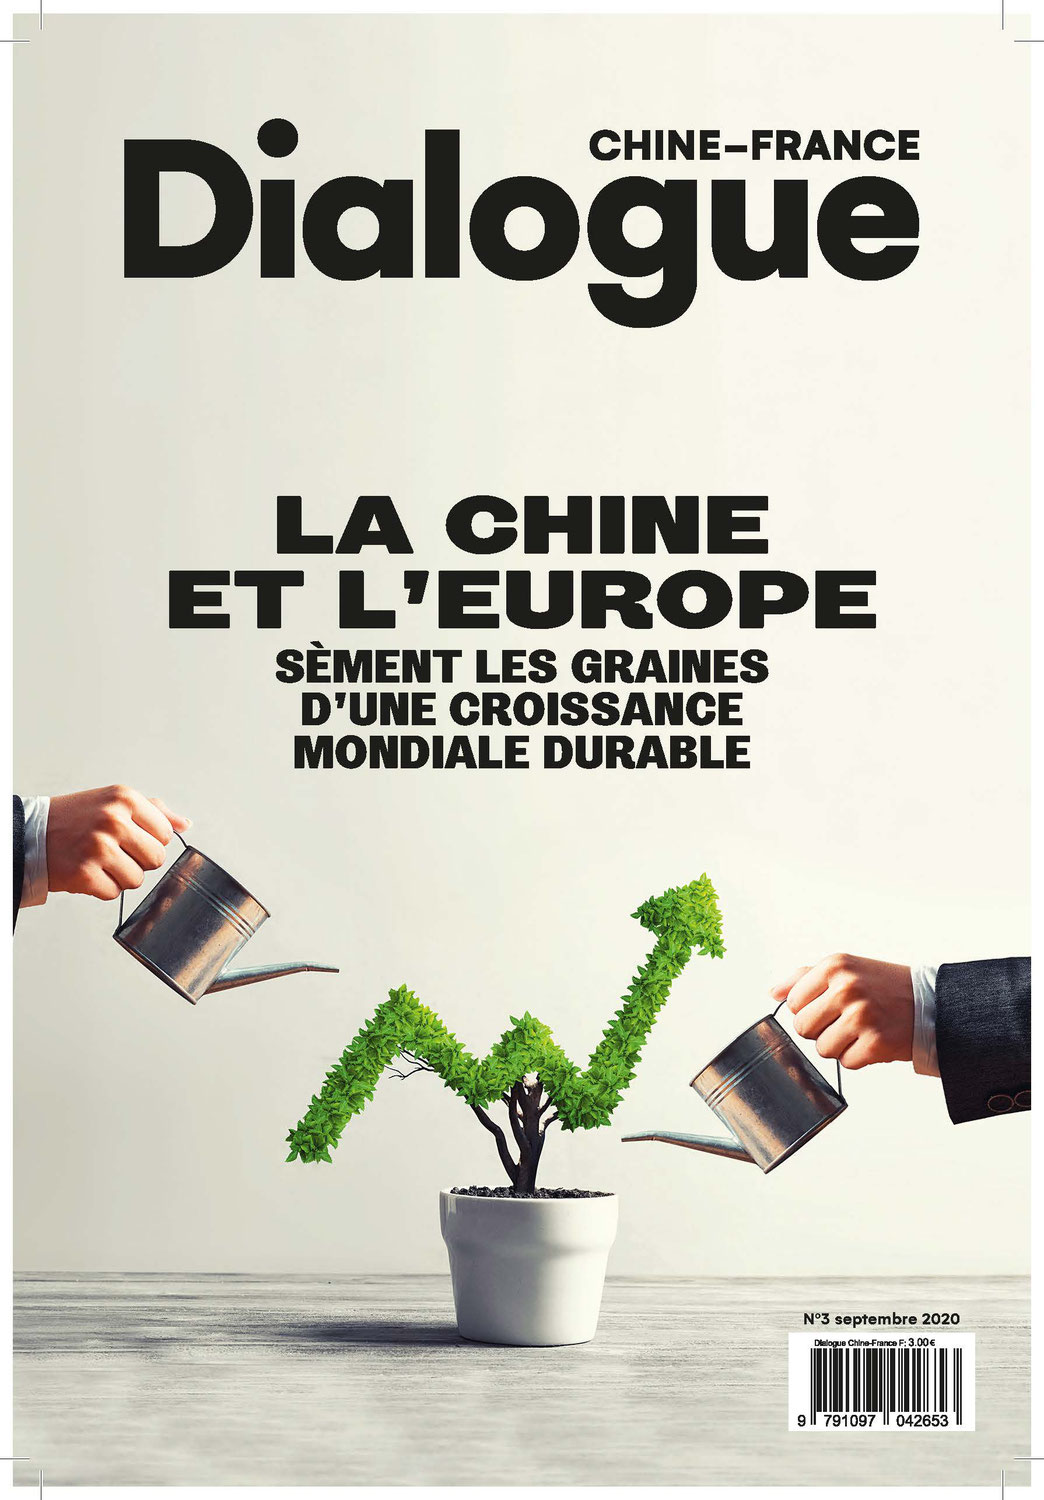 Dialogue Chine - France n°3